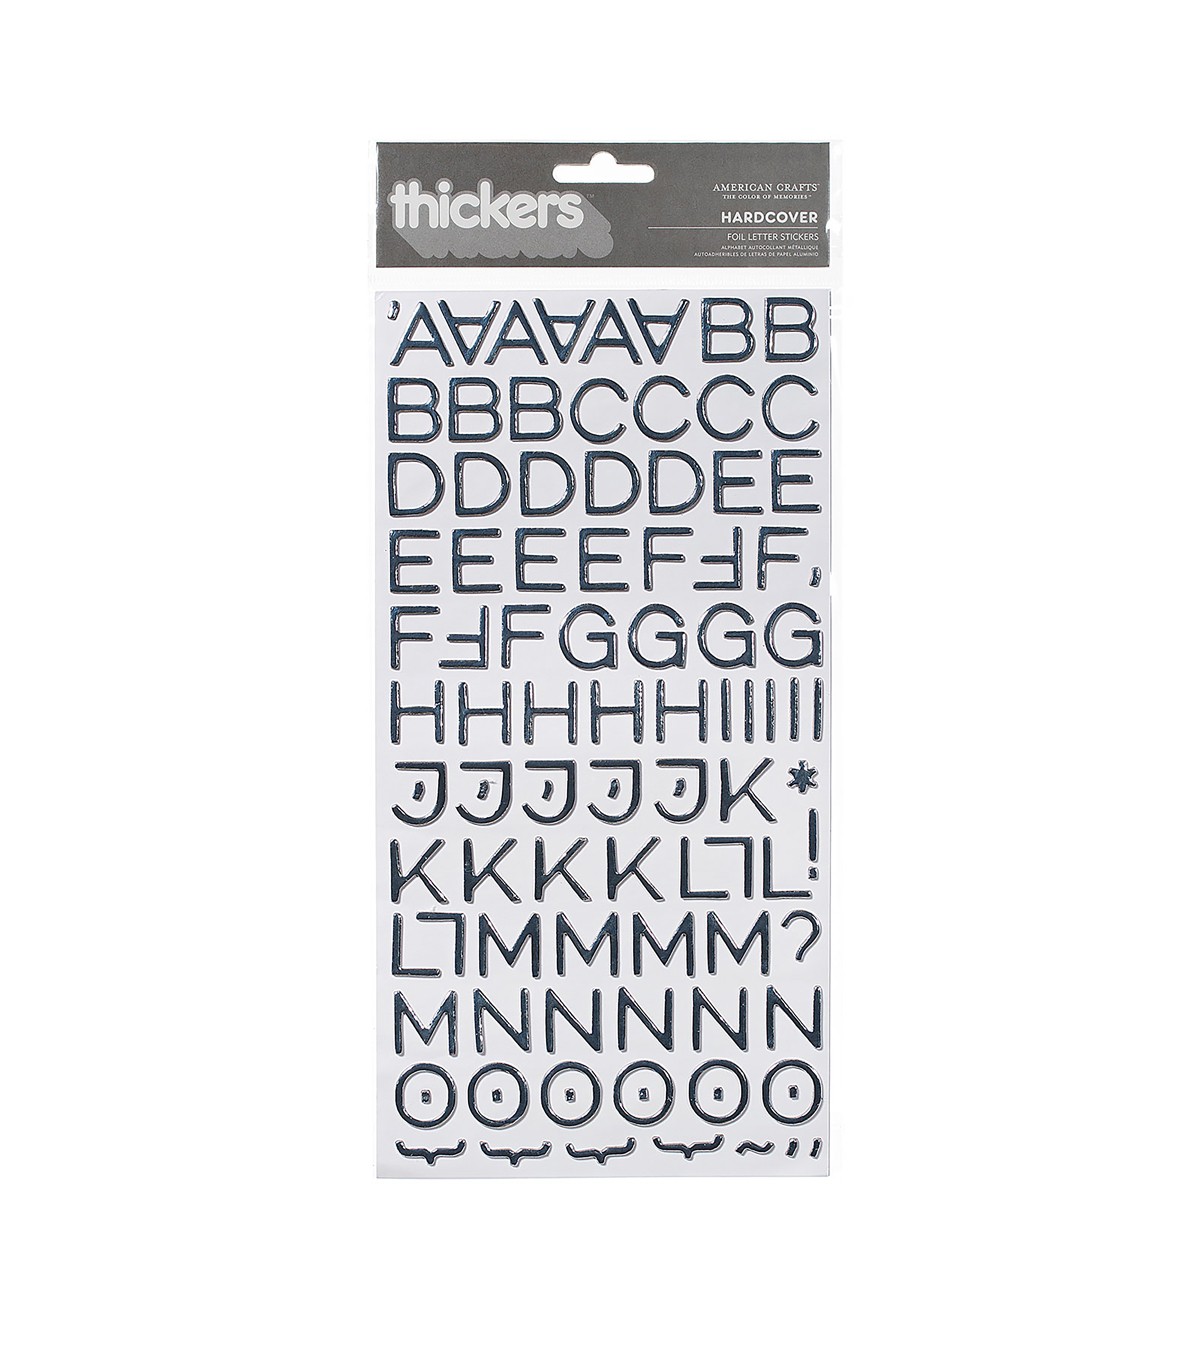 Thickers Foil Stickers 6\u0022X11\u0022 Sheets 2/Pkg-Hardcover, Silver